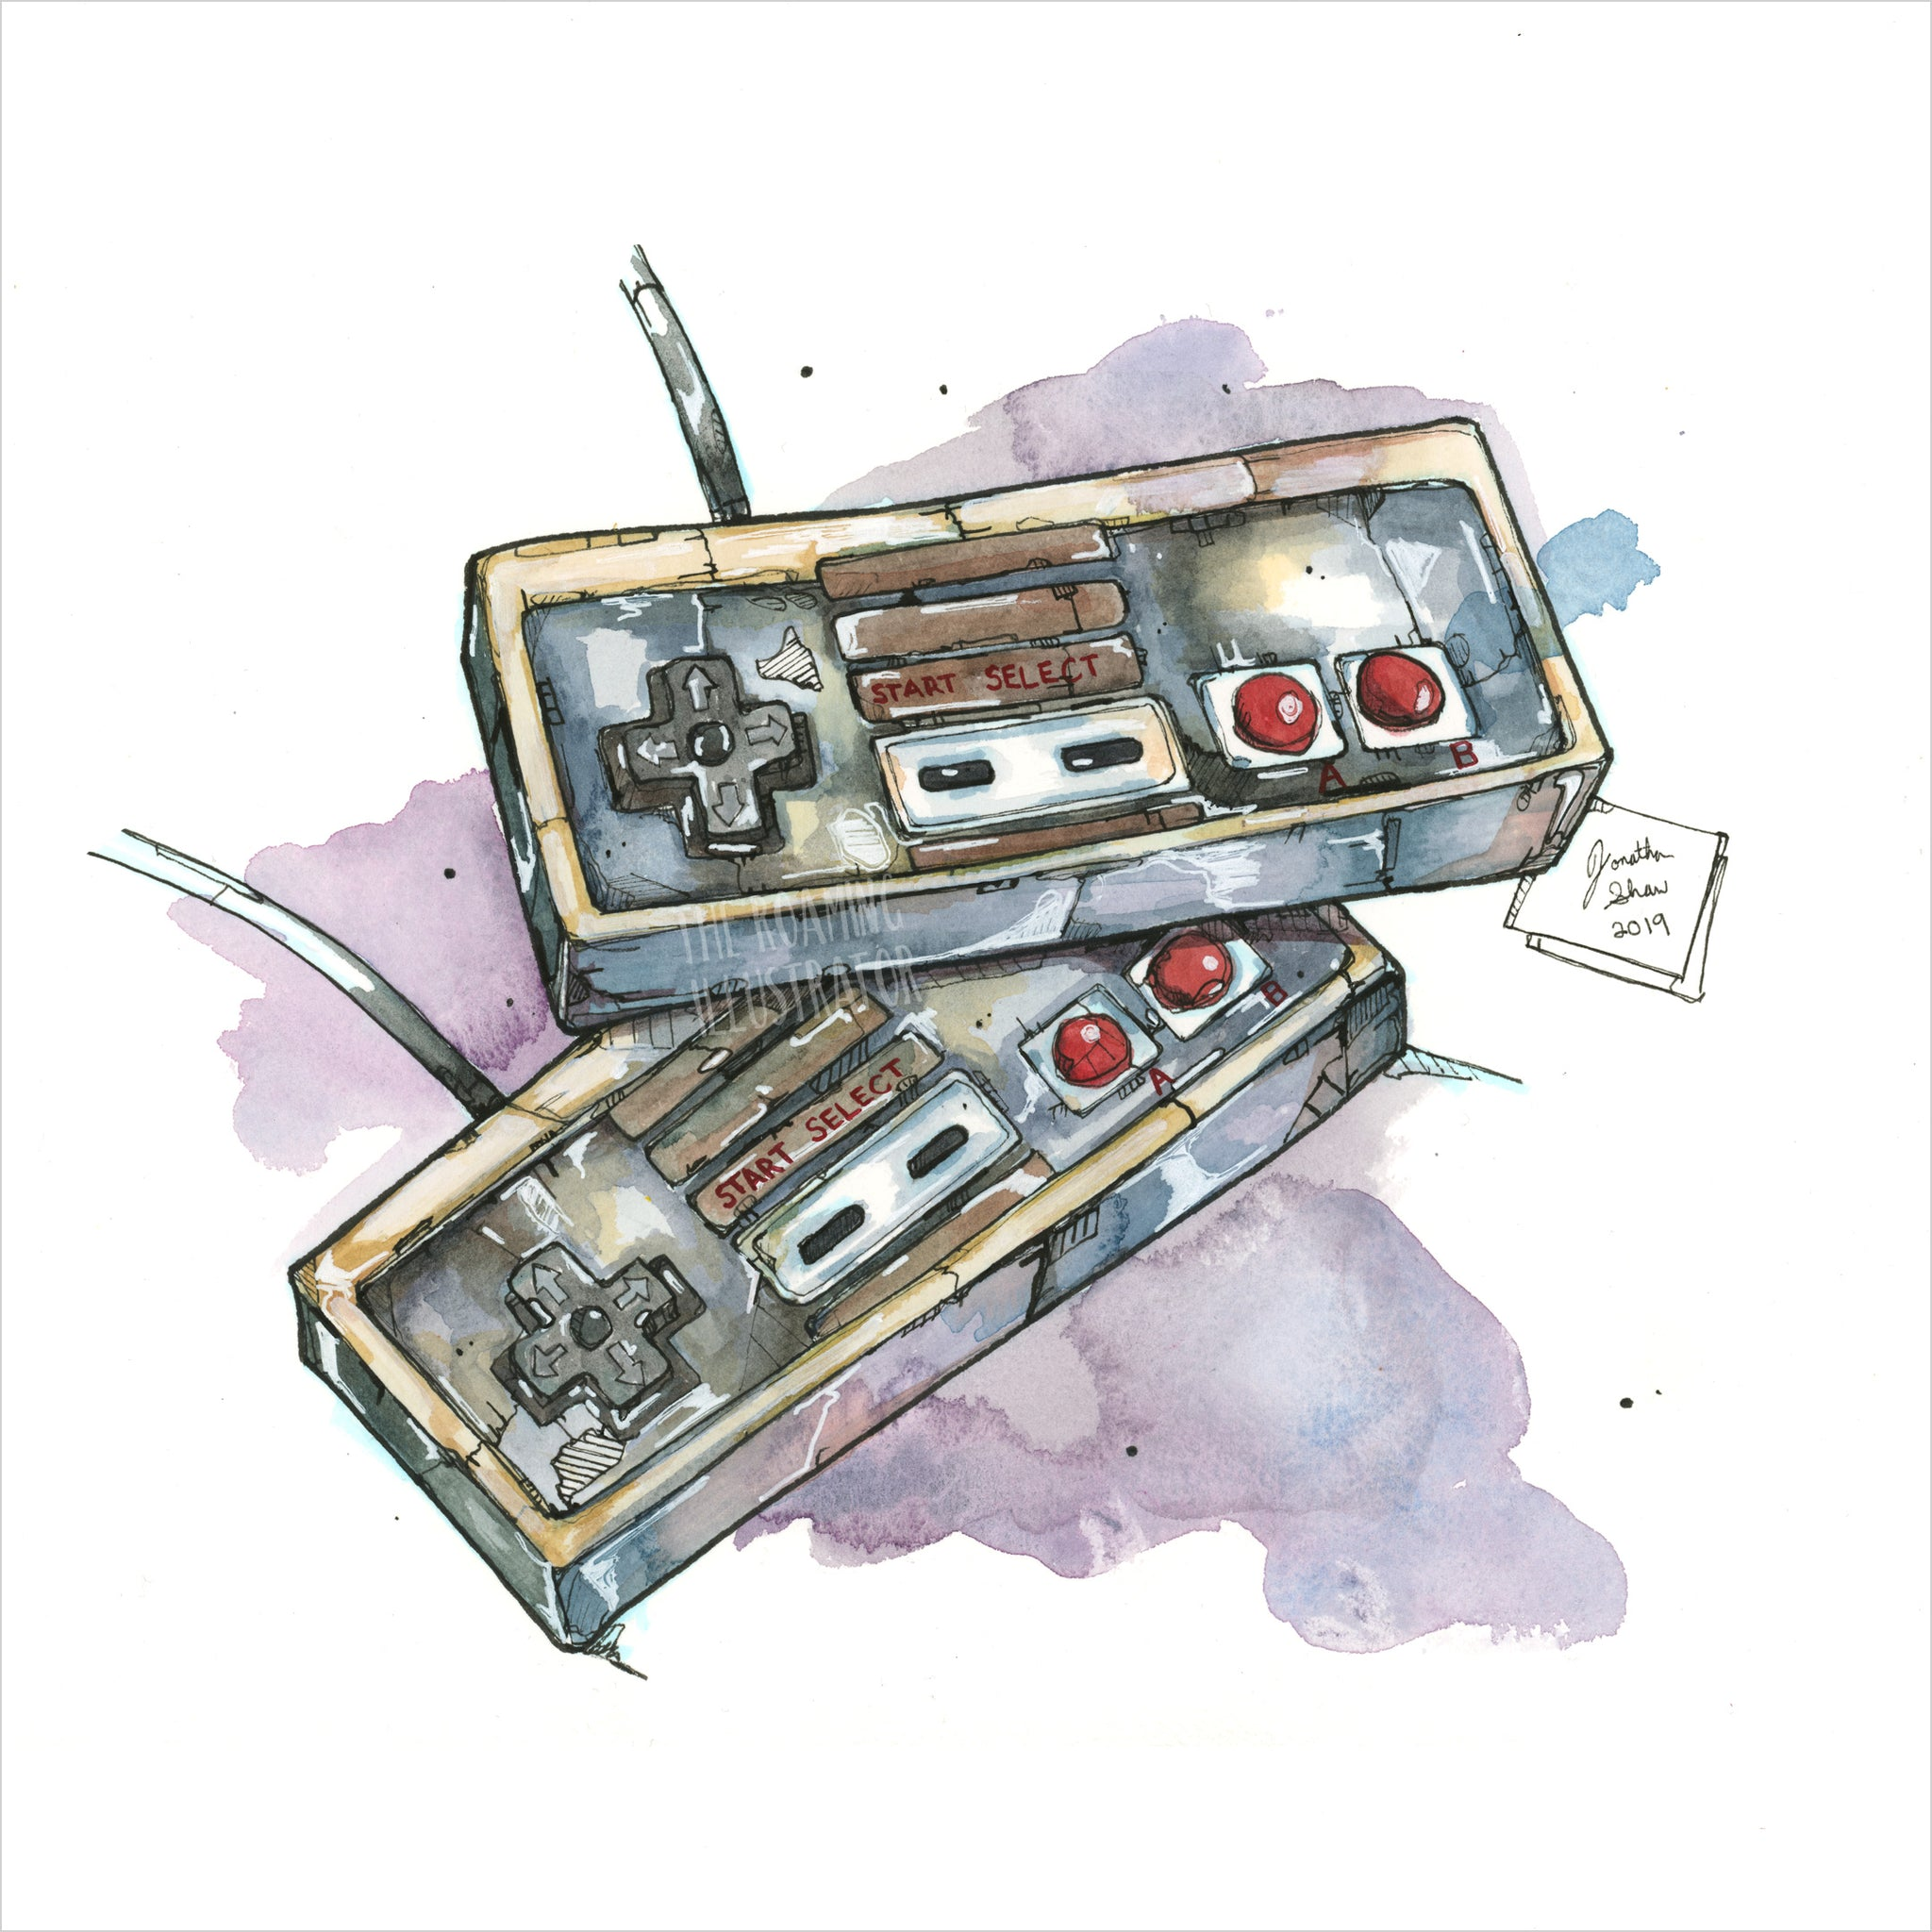 """NES Controllers"" - Original 8x10 Illustration (SOLD)"